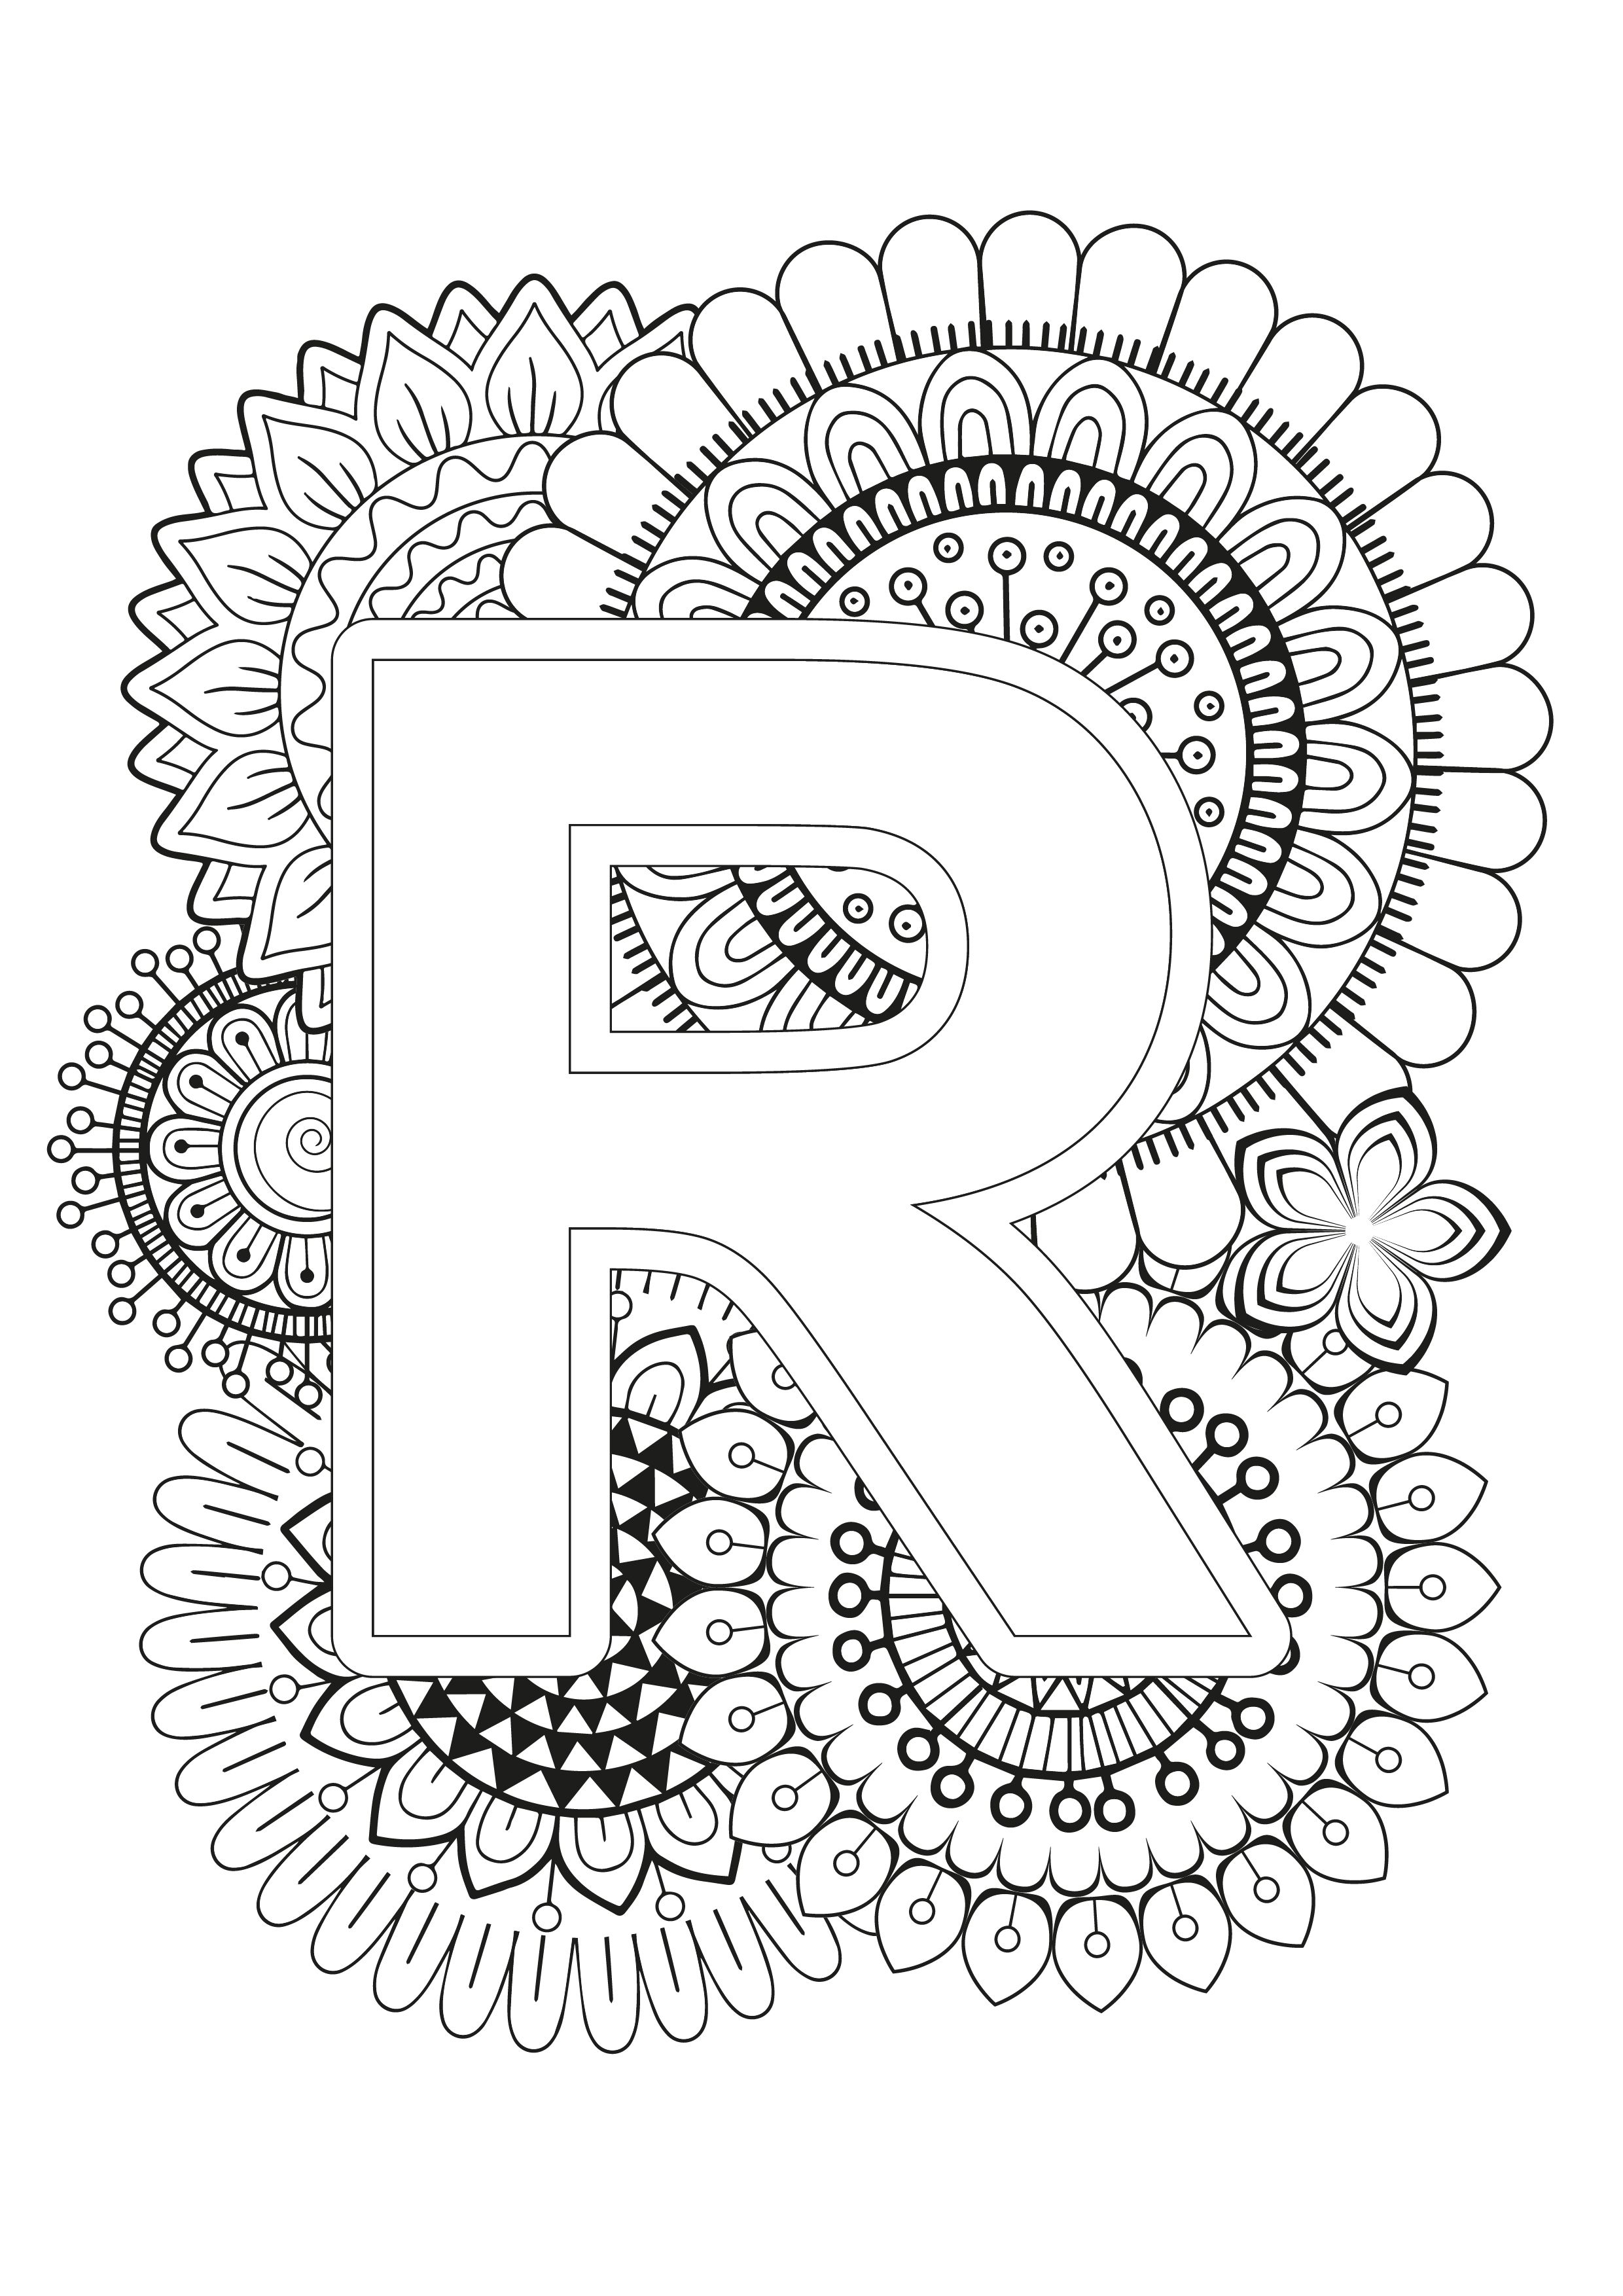 Mindfulness Coloring Page Alphabet Pattern Coloring Pages Coloring Books Alphabet Coloring Pages